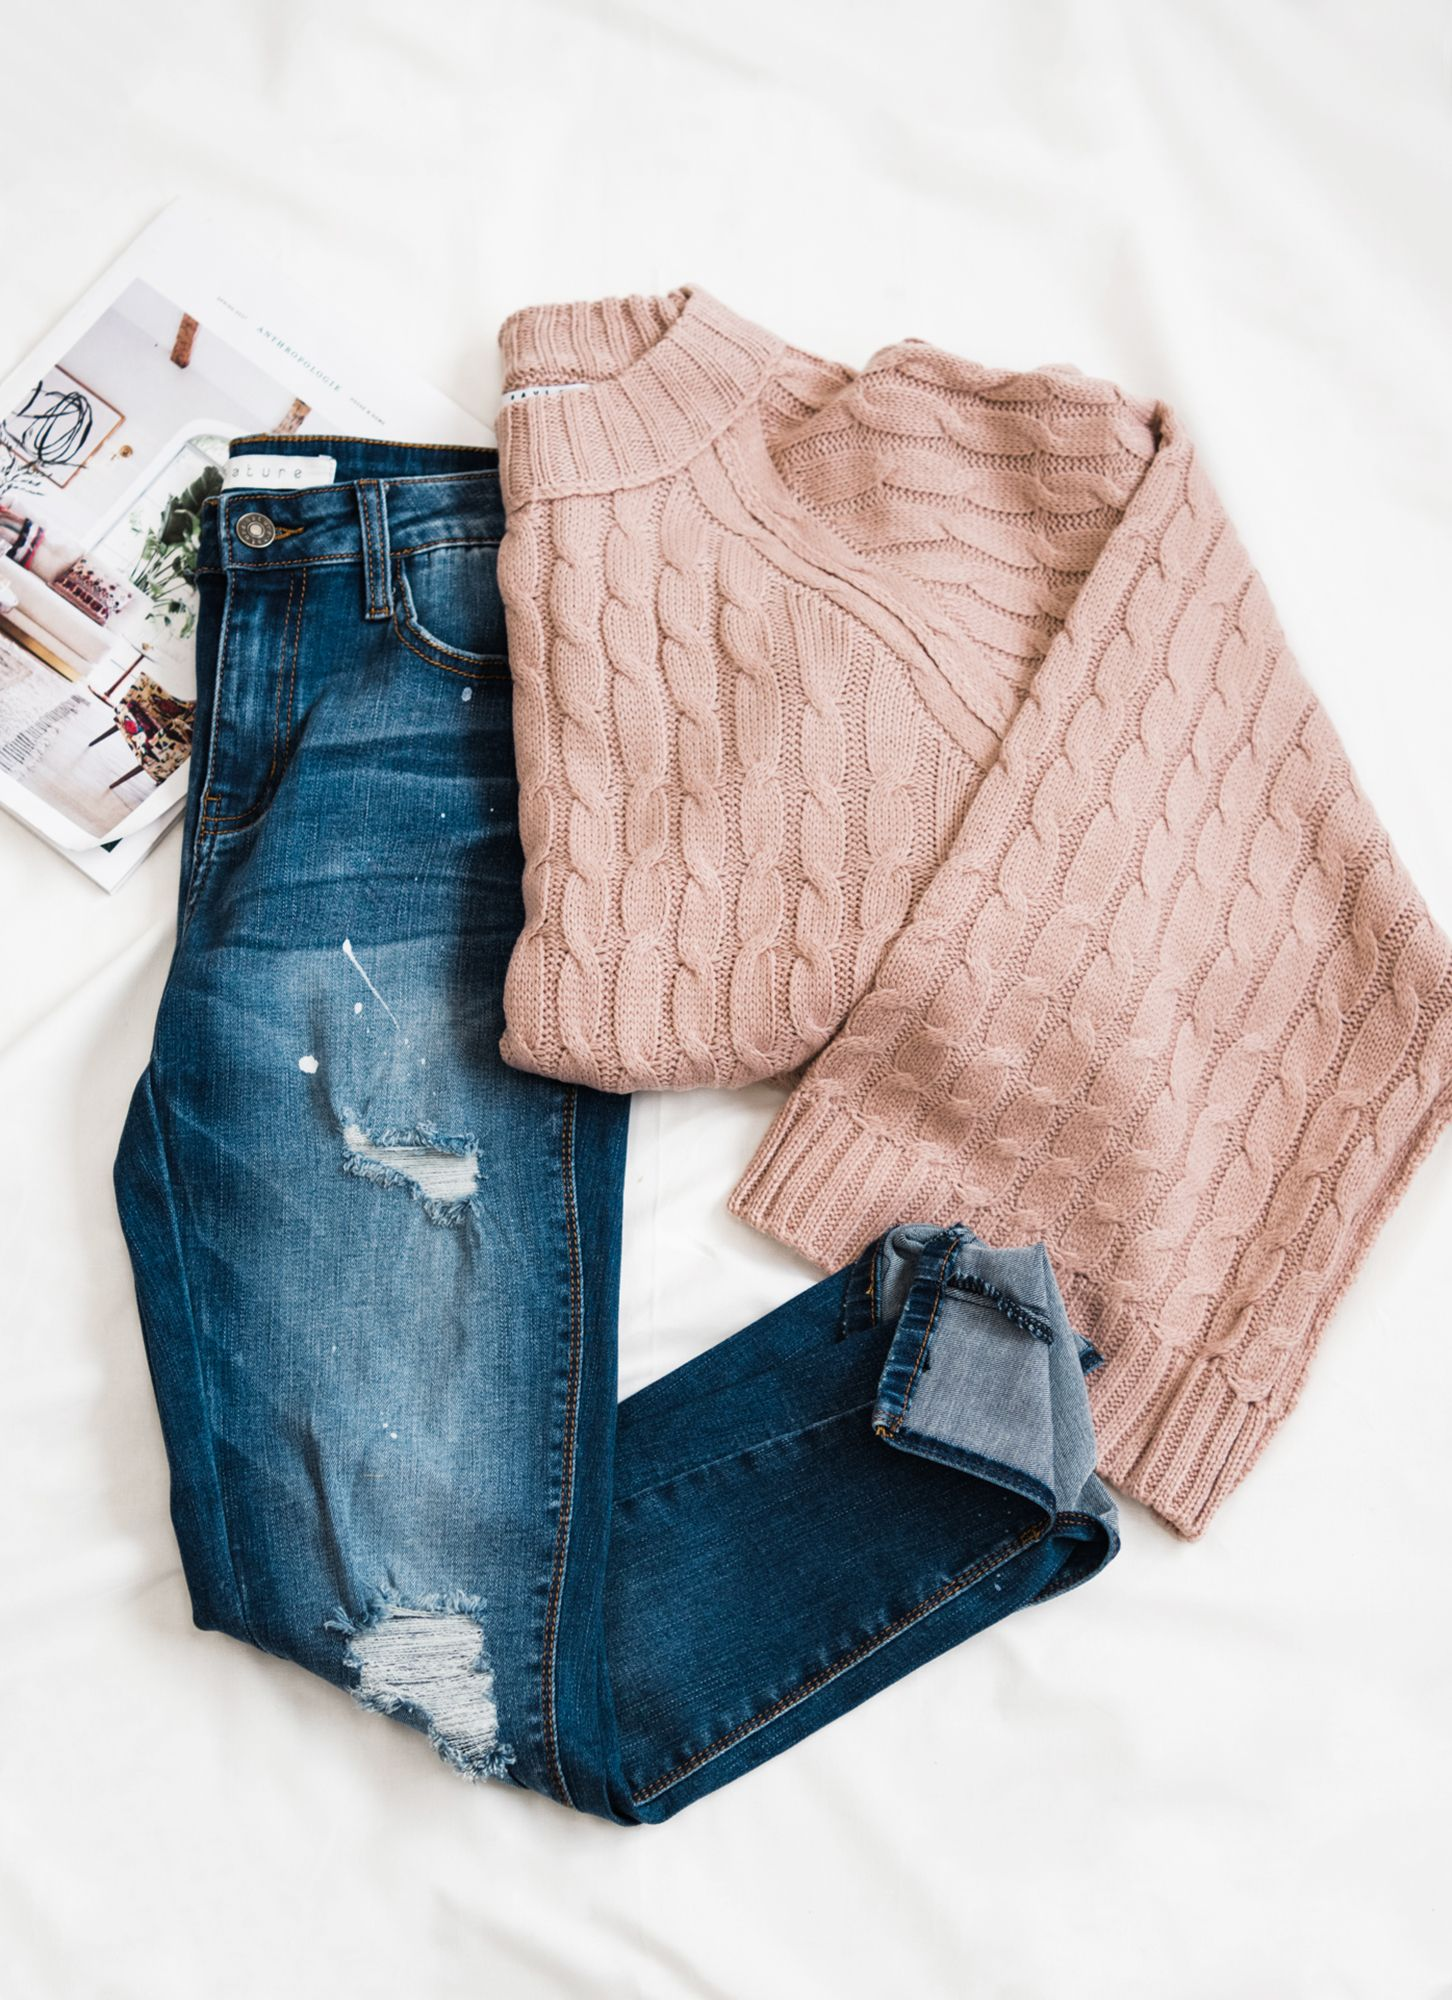 Cute knit sweater with trendy distressed denim jeans